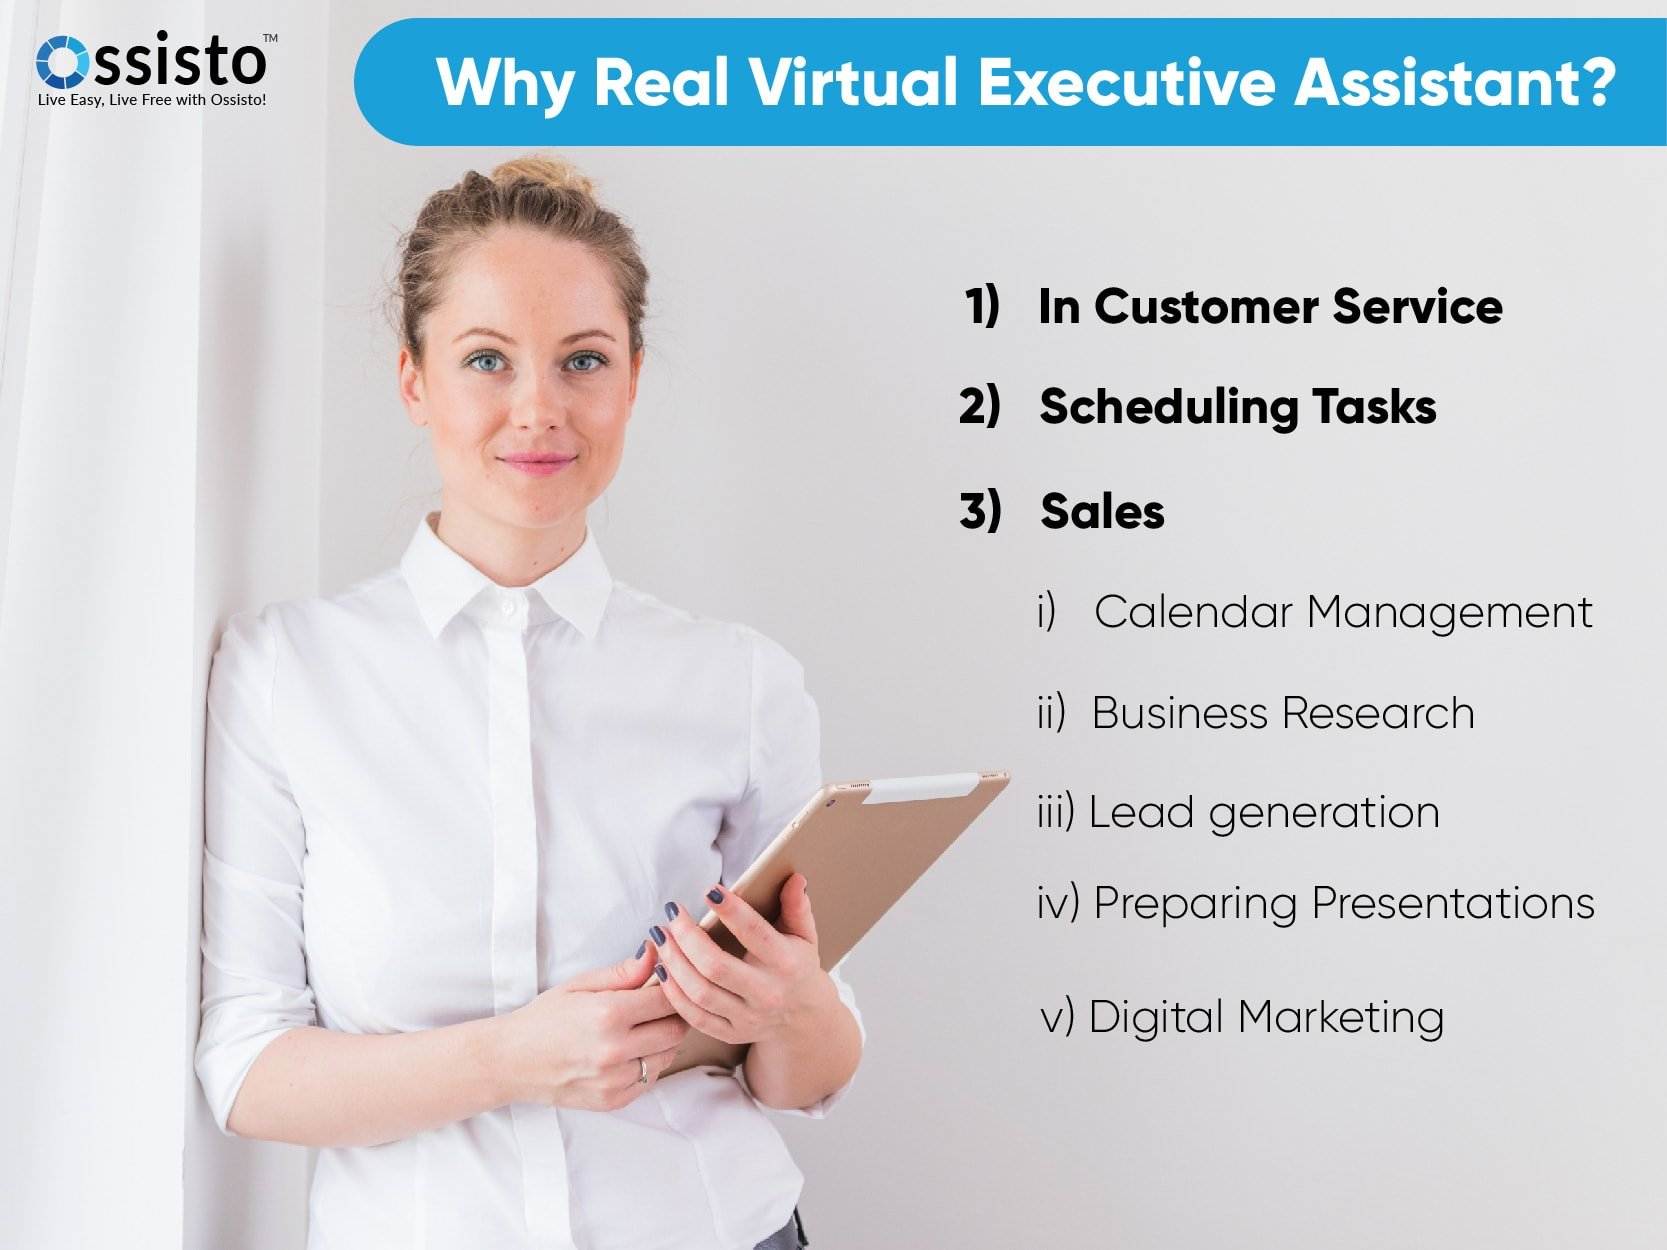 Here's Why a Real Virtual Executive Assistant Is Preferable Over AI